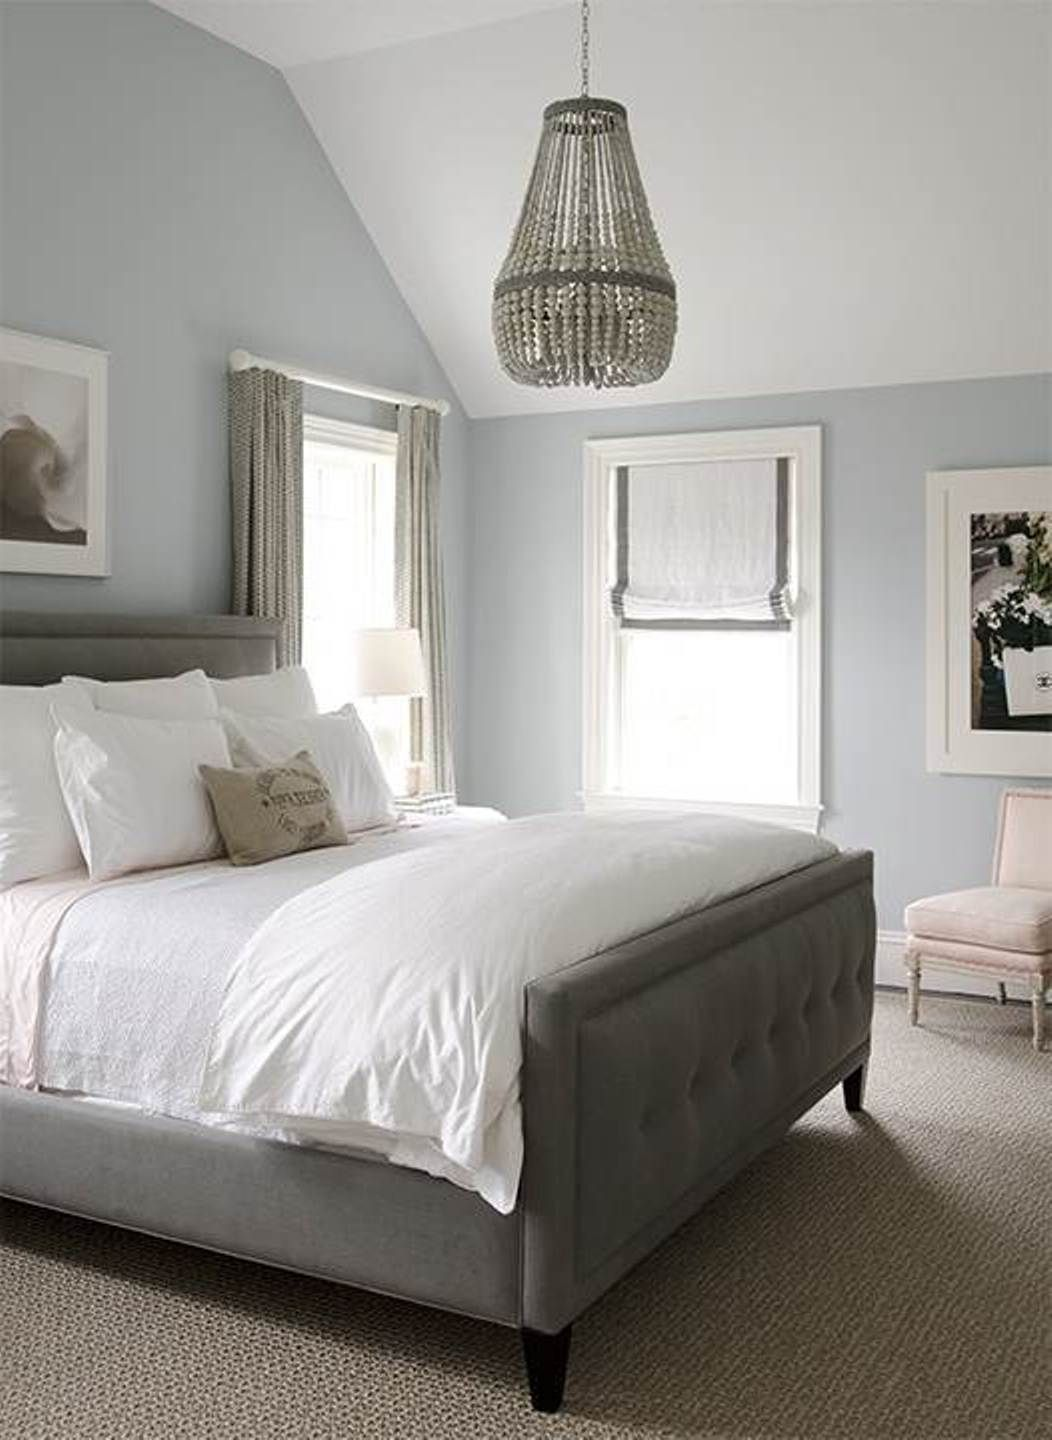 Simple Bedroom Remodel love the grey. cute master bedroom ideas on a budget : decorating